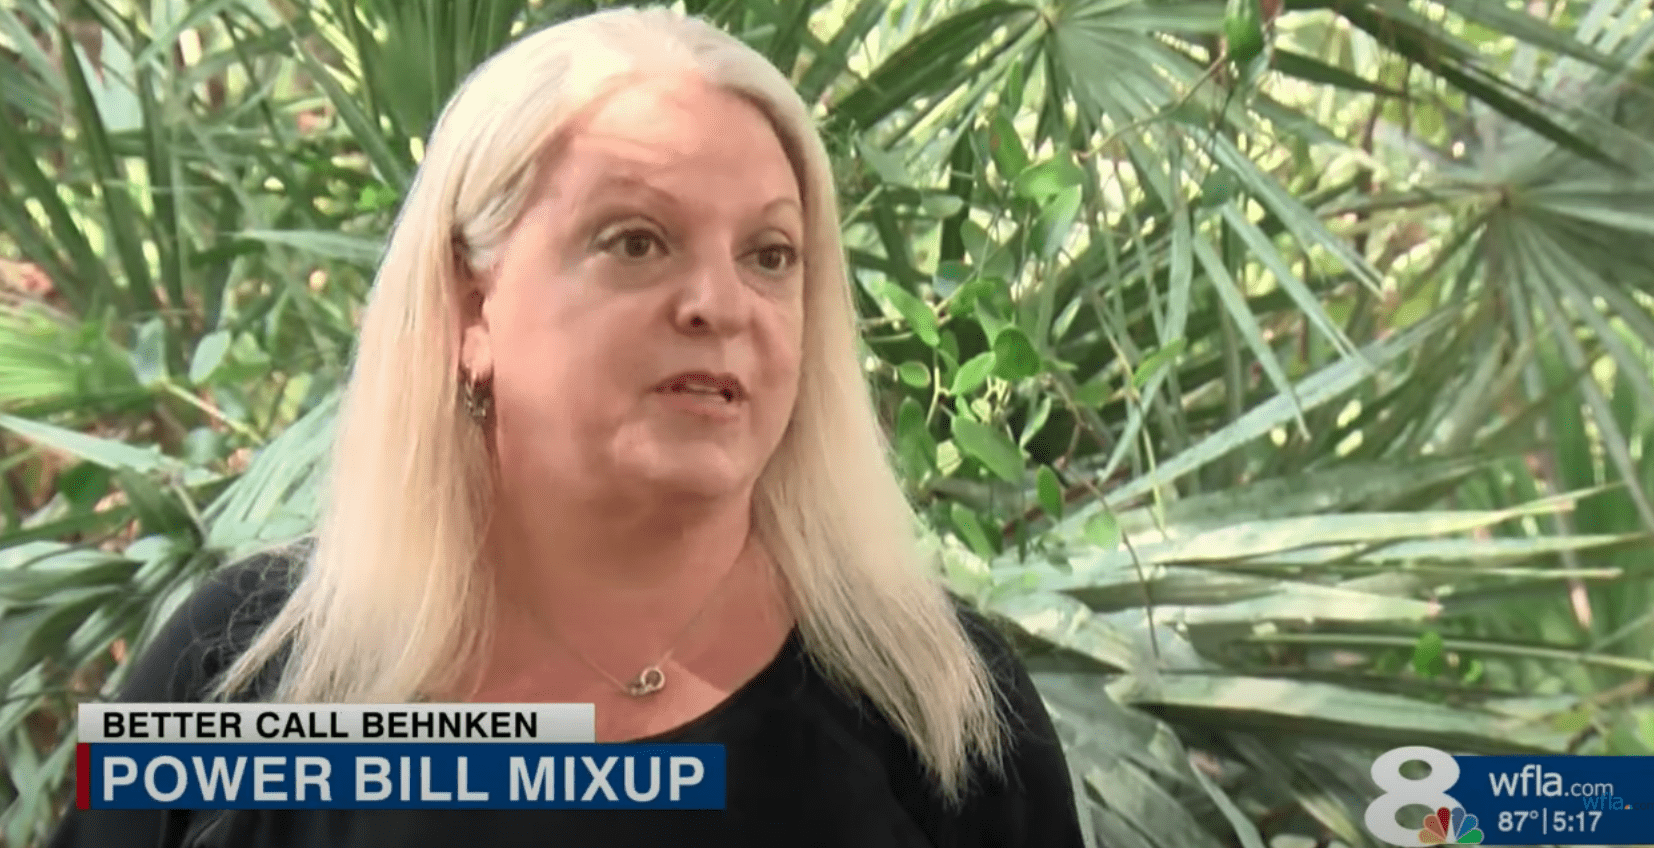 Woman shares that her mother's account was debited incorrectly and as a result they struggled to pay all of her living expenses   Photo: Youtube/WFLA News Channel 8